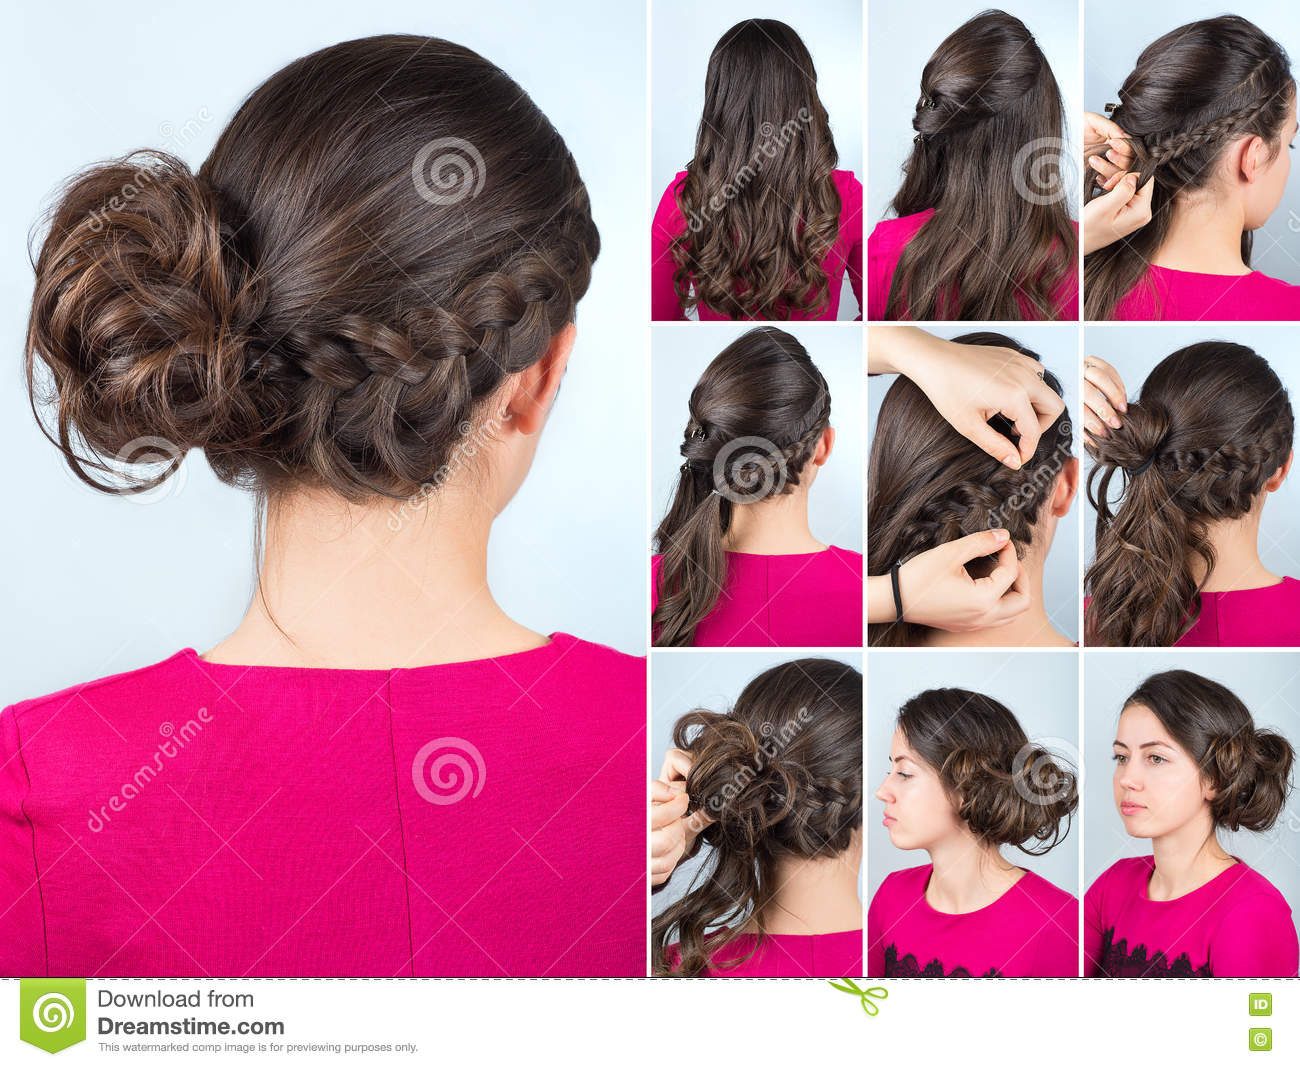 Curly hairstyles tutorials - Hairstyle Bun And Plait On Curly Hair Tutorial Stock Photography